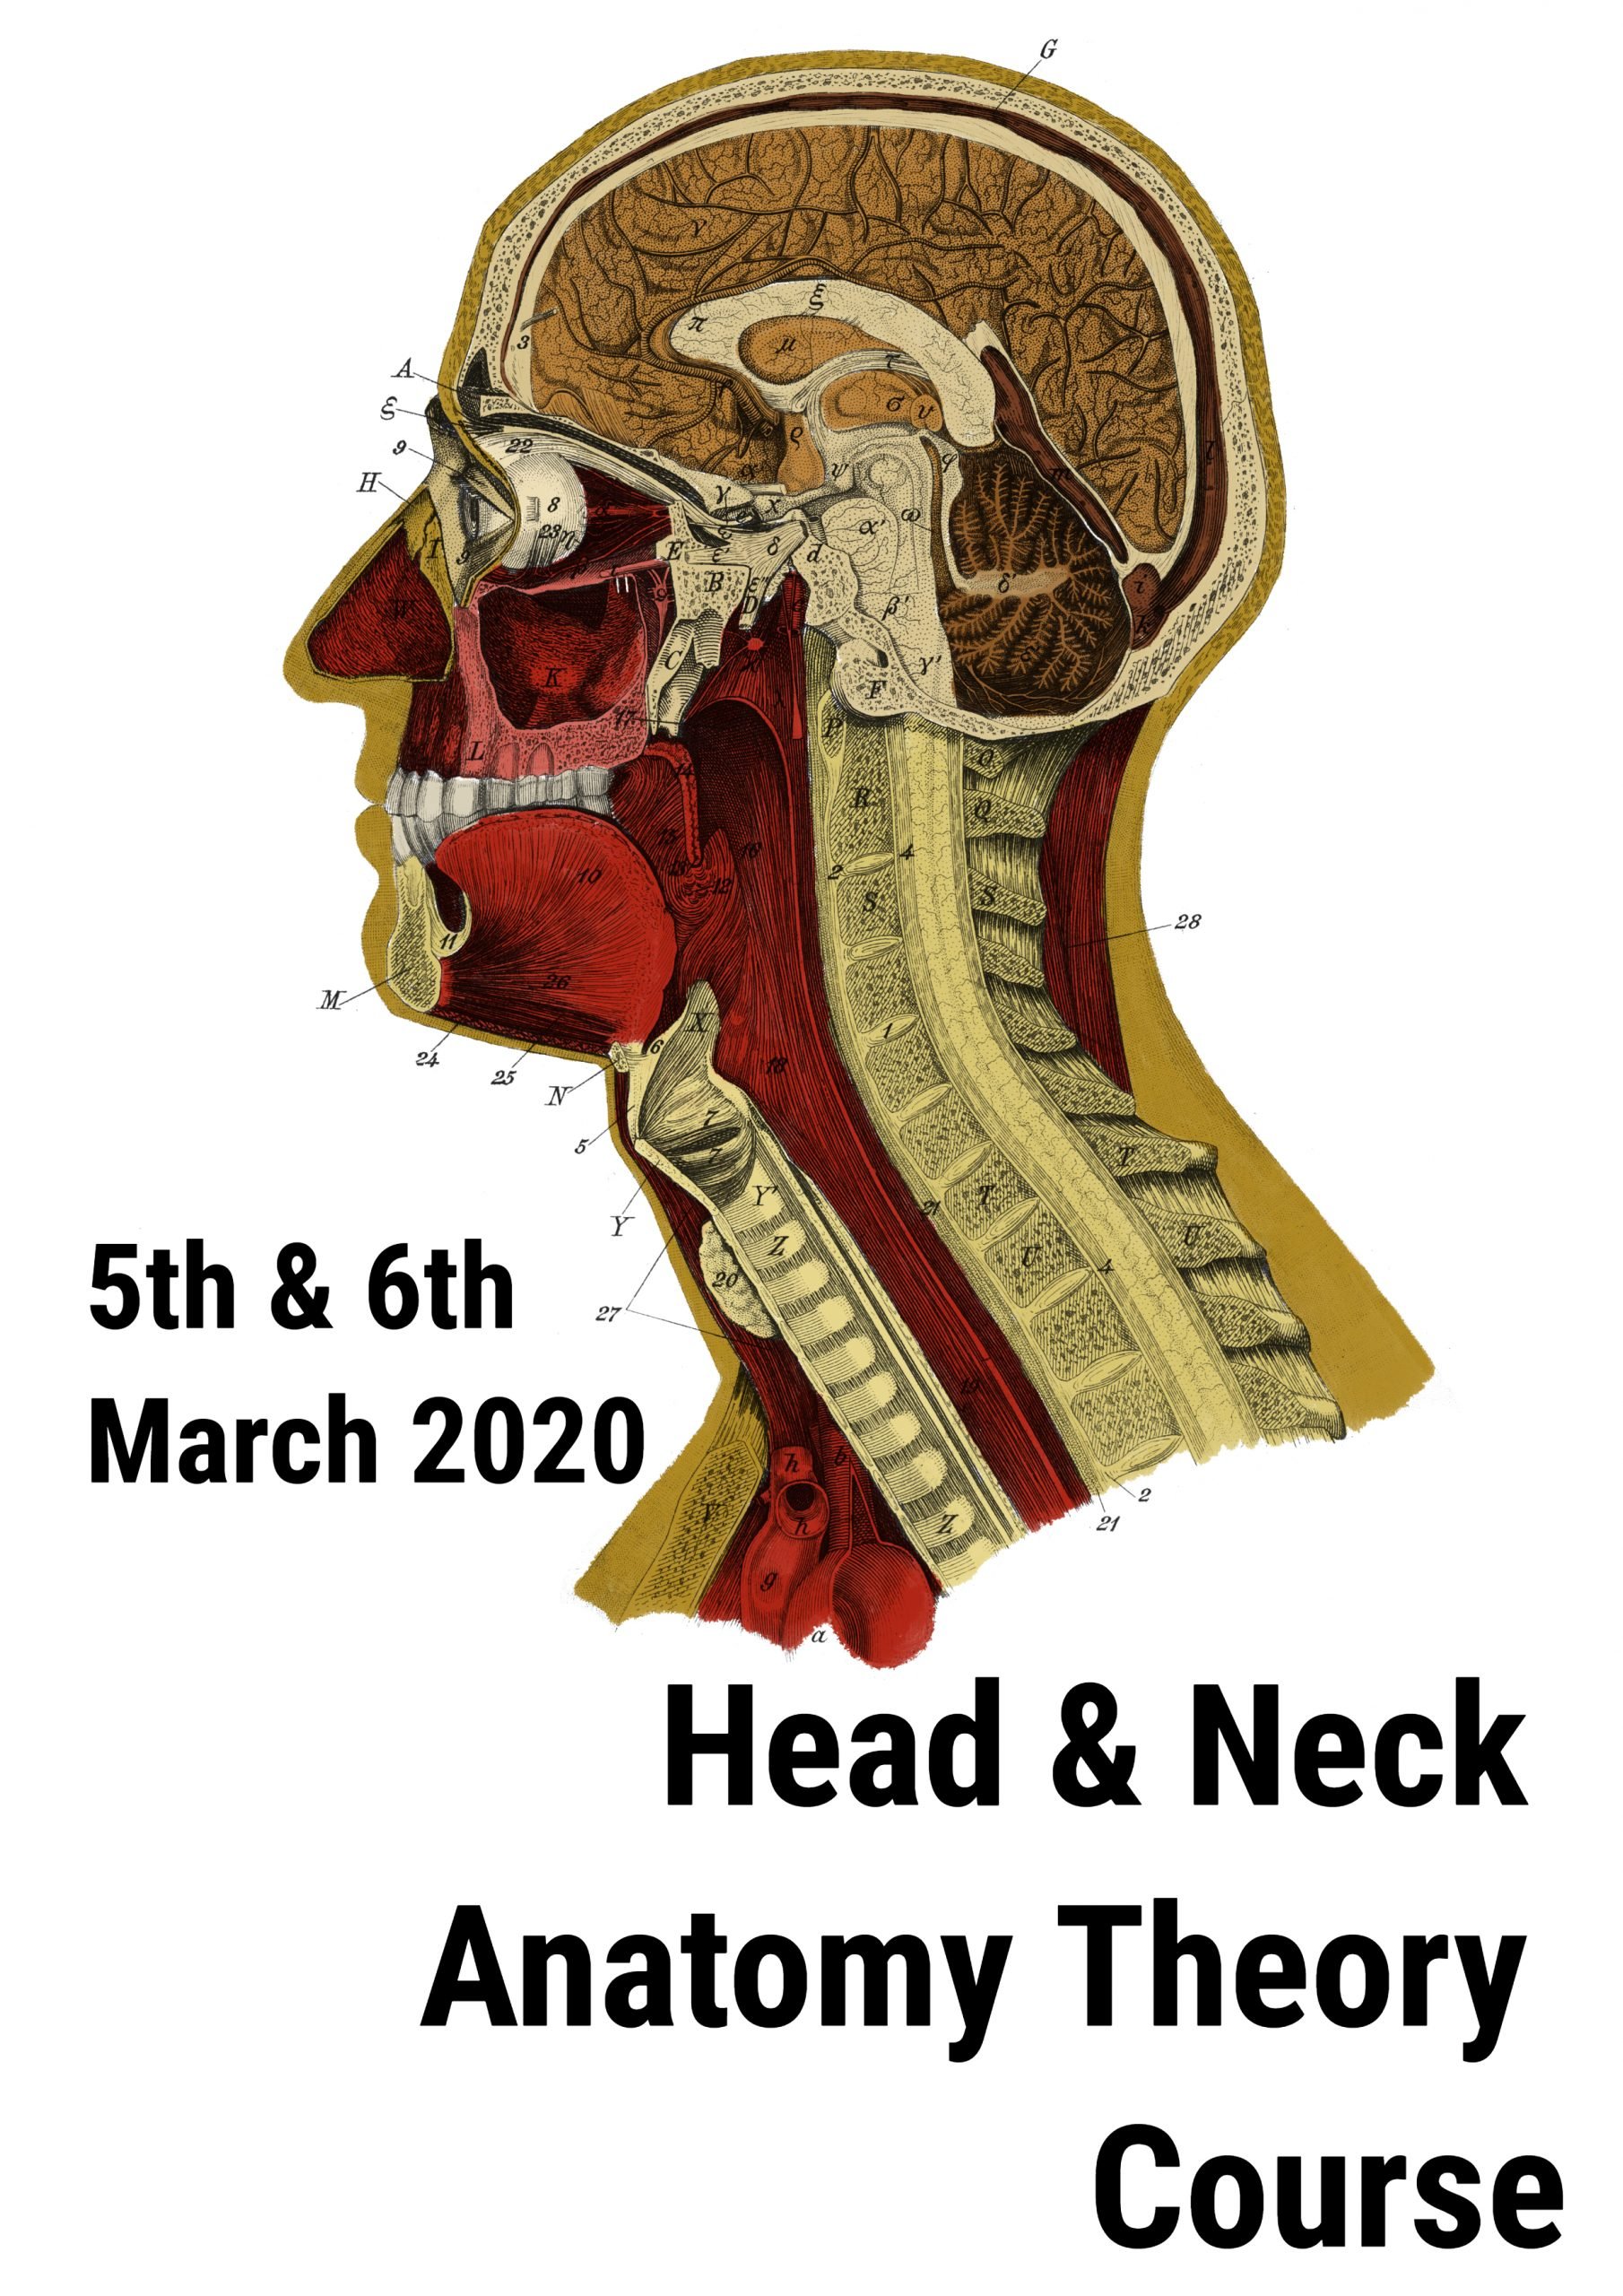 Head and Neck Anatomy Course